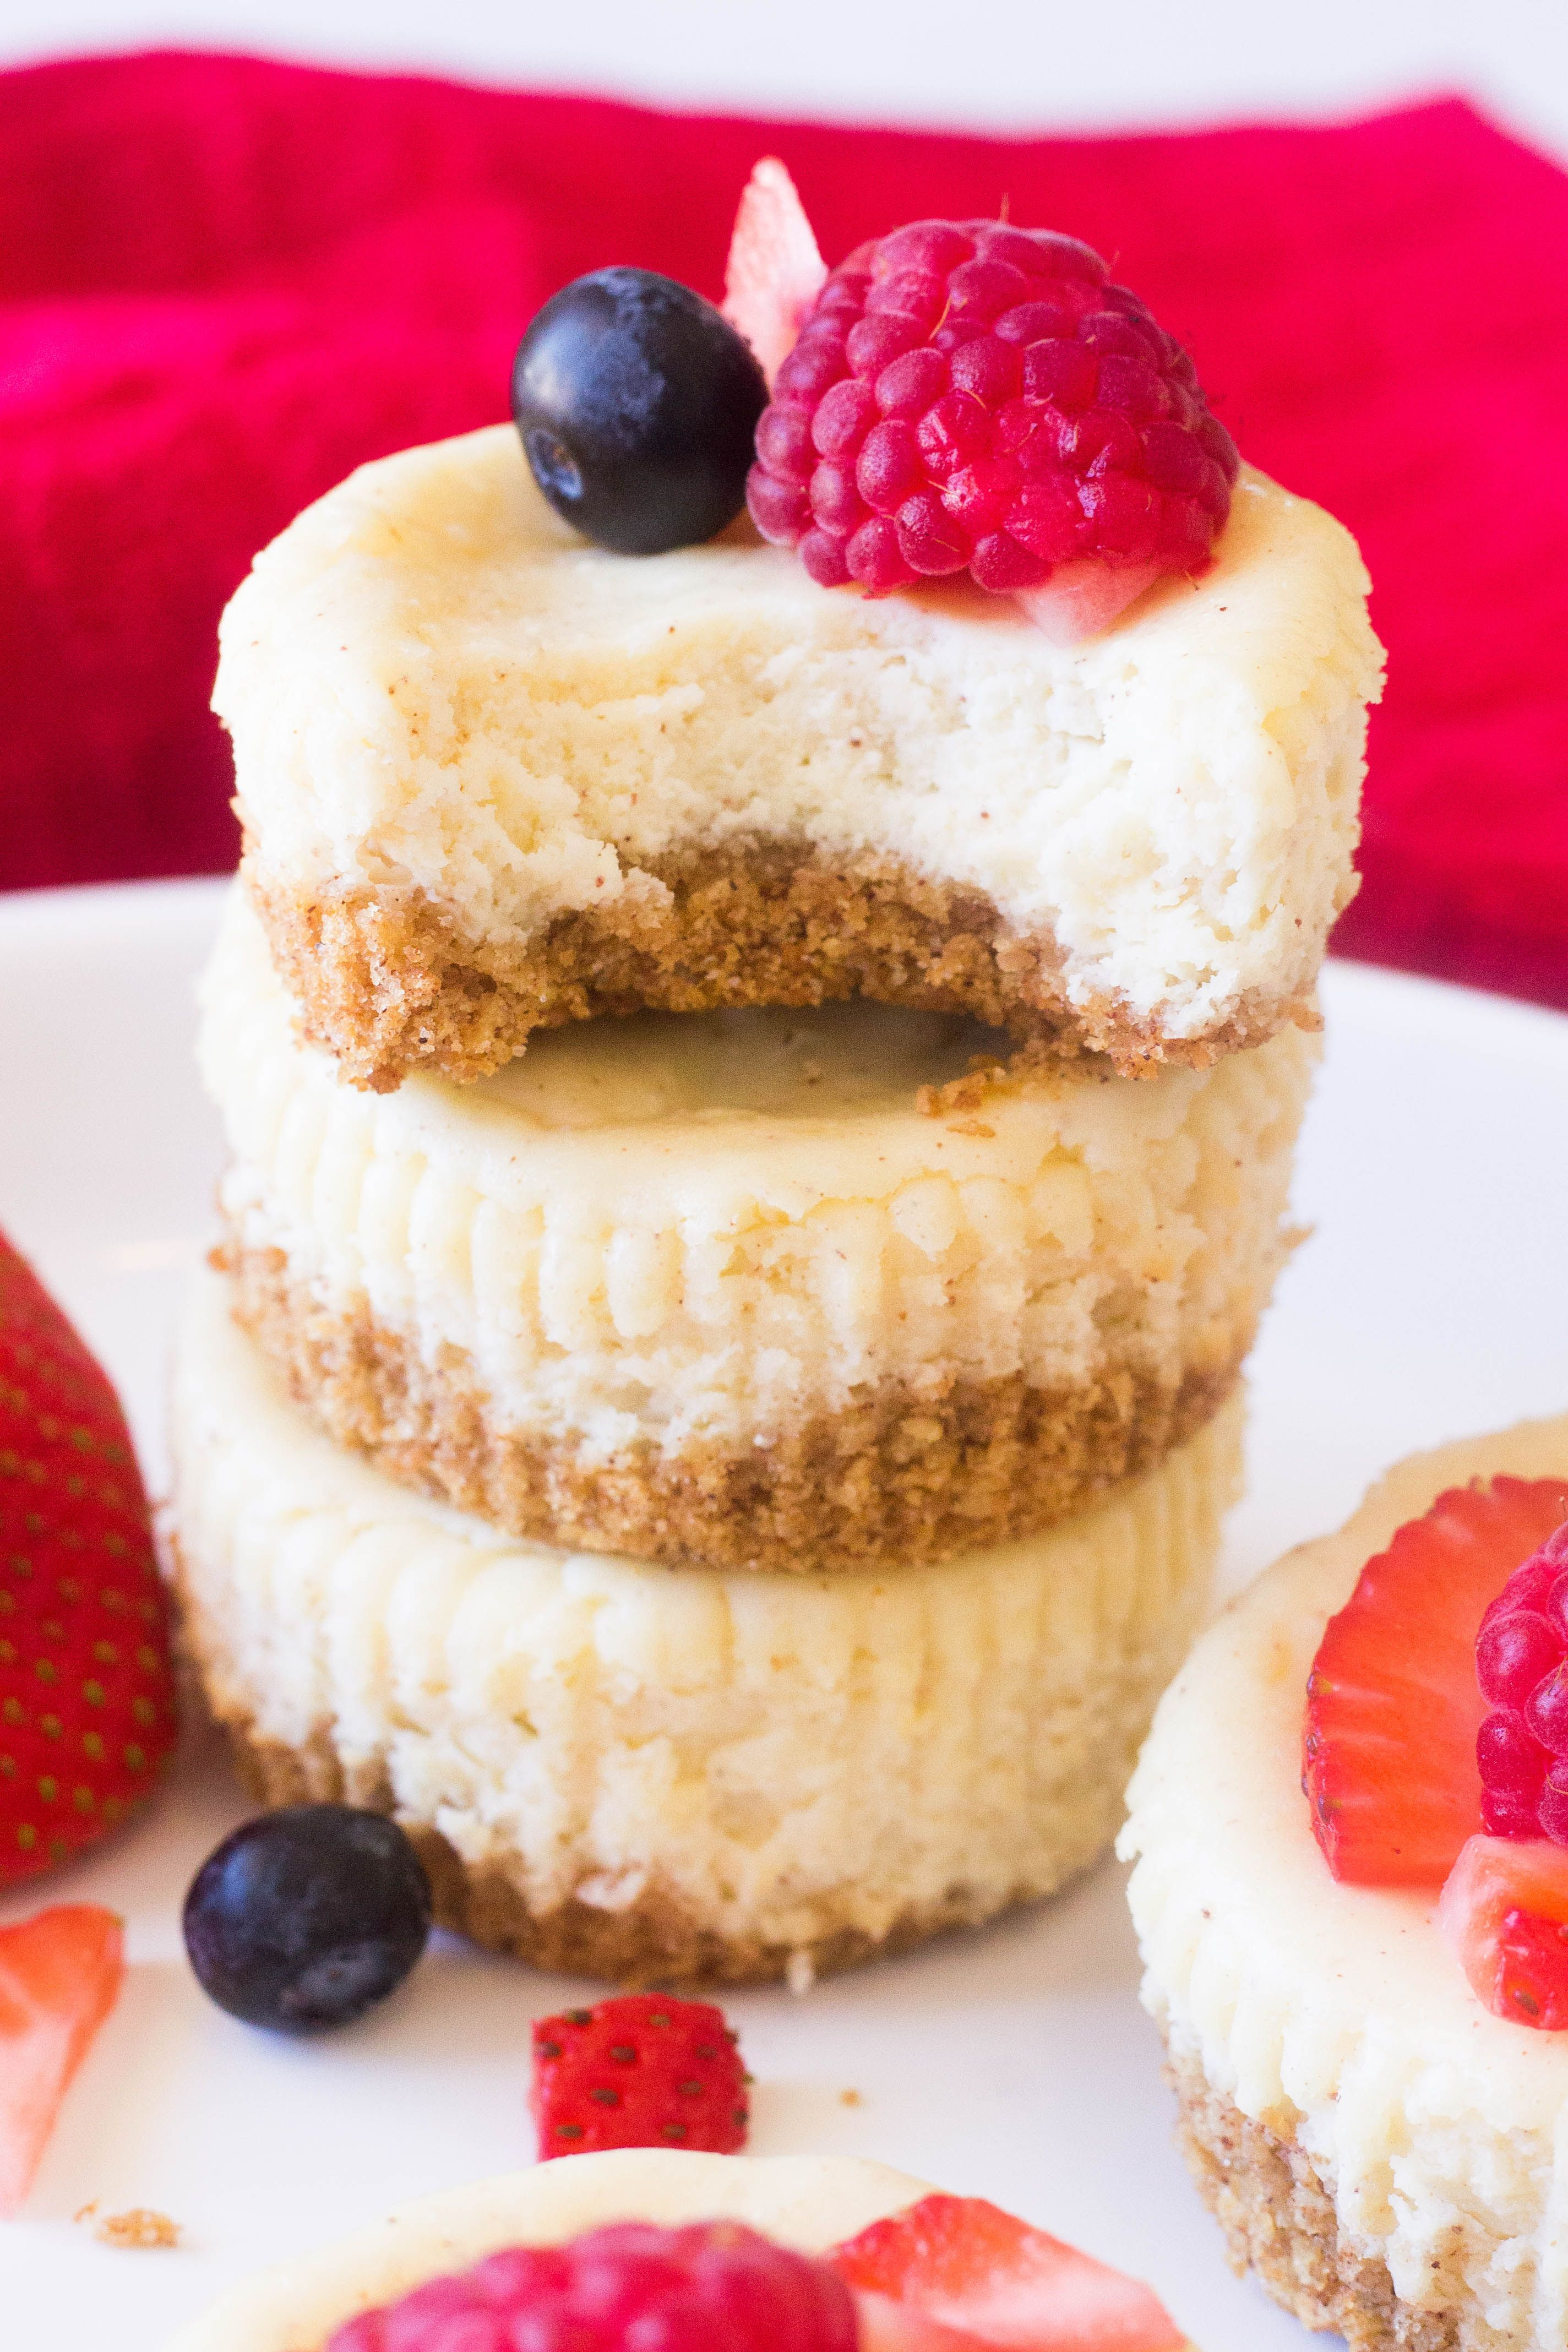 Best Ever Mini Cheesecake Bites These Best Ever Mini Cheesecakes not only are one of the easiest desserts I've made, they are creamy, thick and have a hint of cinnamon! You can have perfect bites of cheesecake in less than an hour!